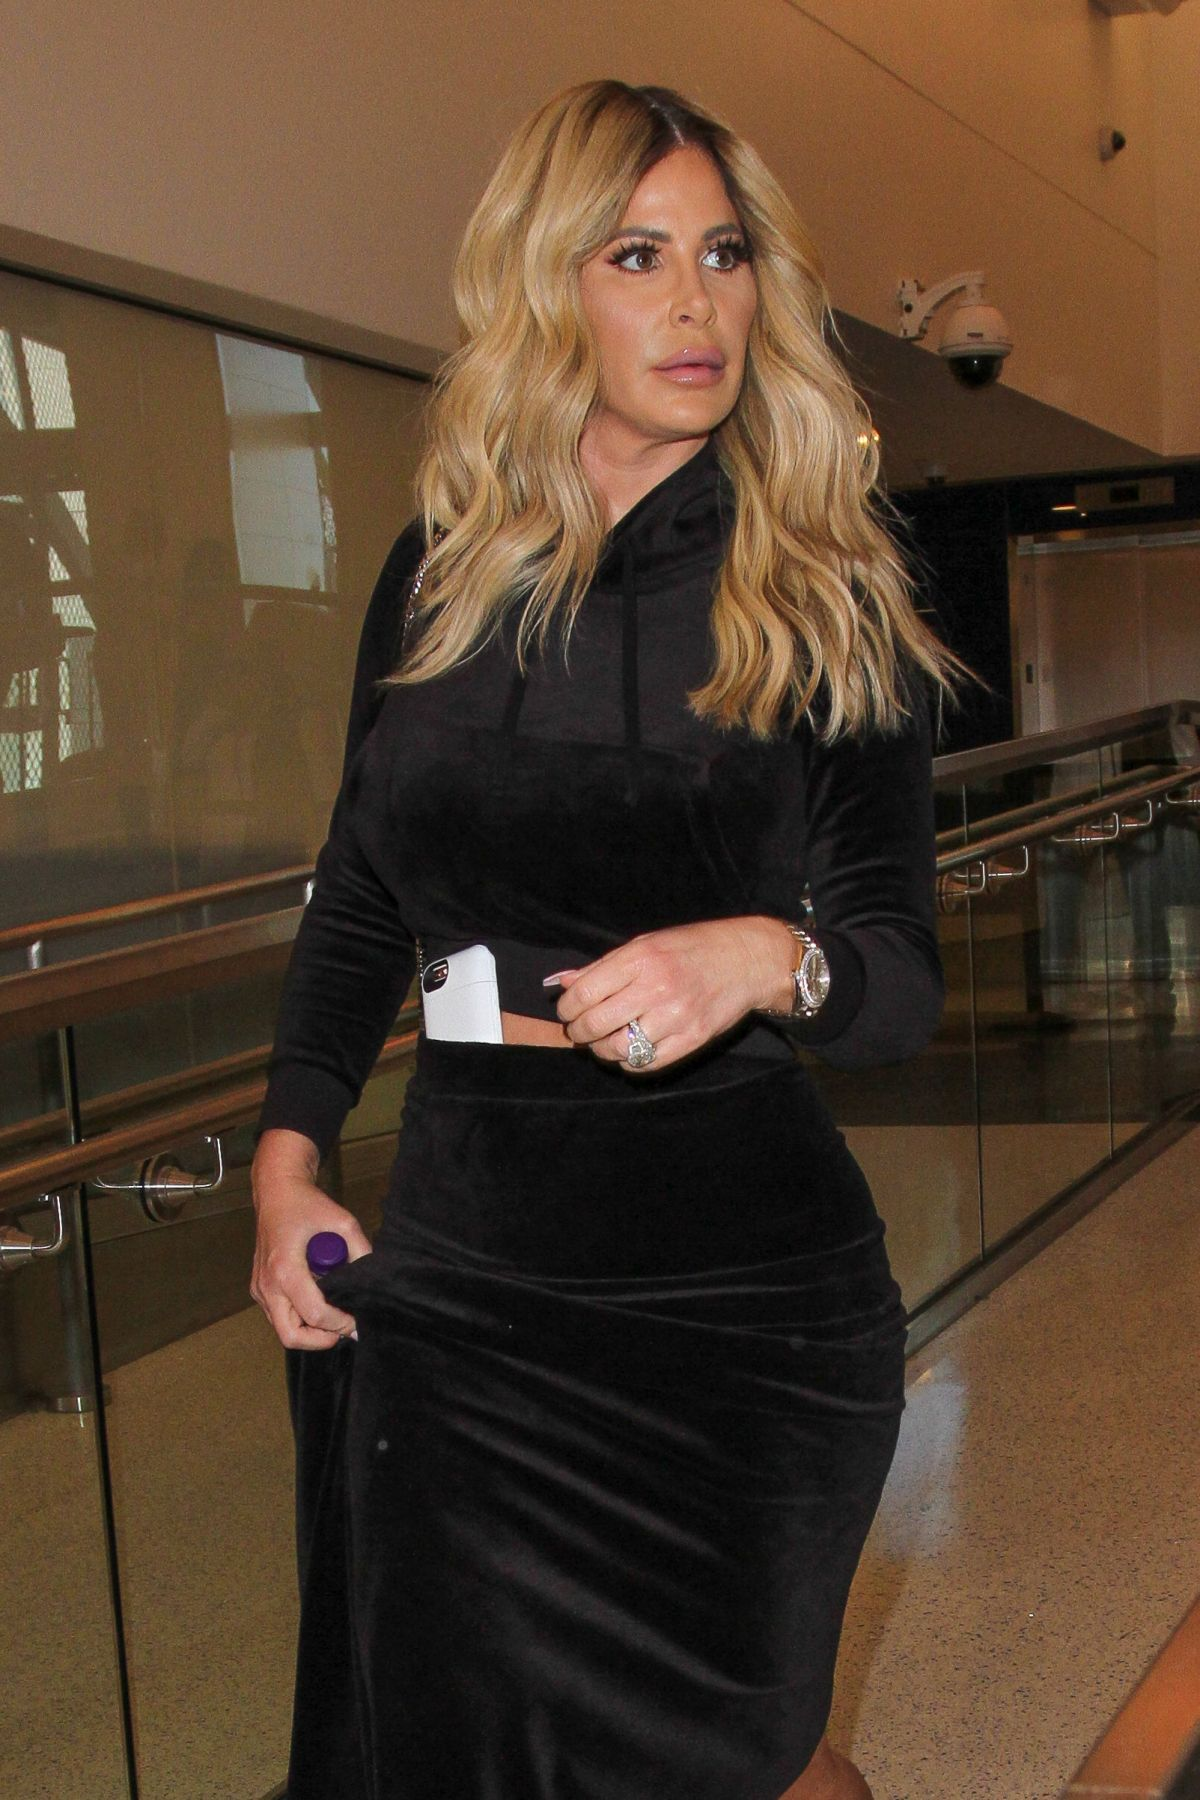 KIM ZOLCIAK at LAX Airport in Los Angeles 03/01/2017